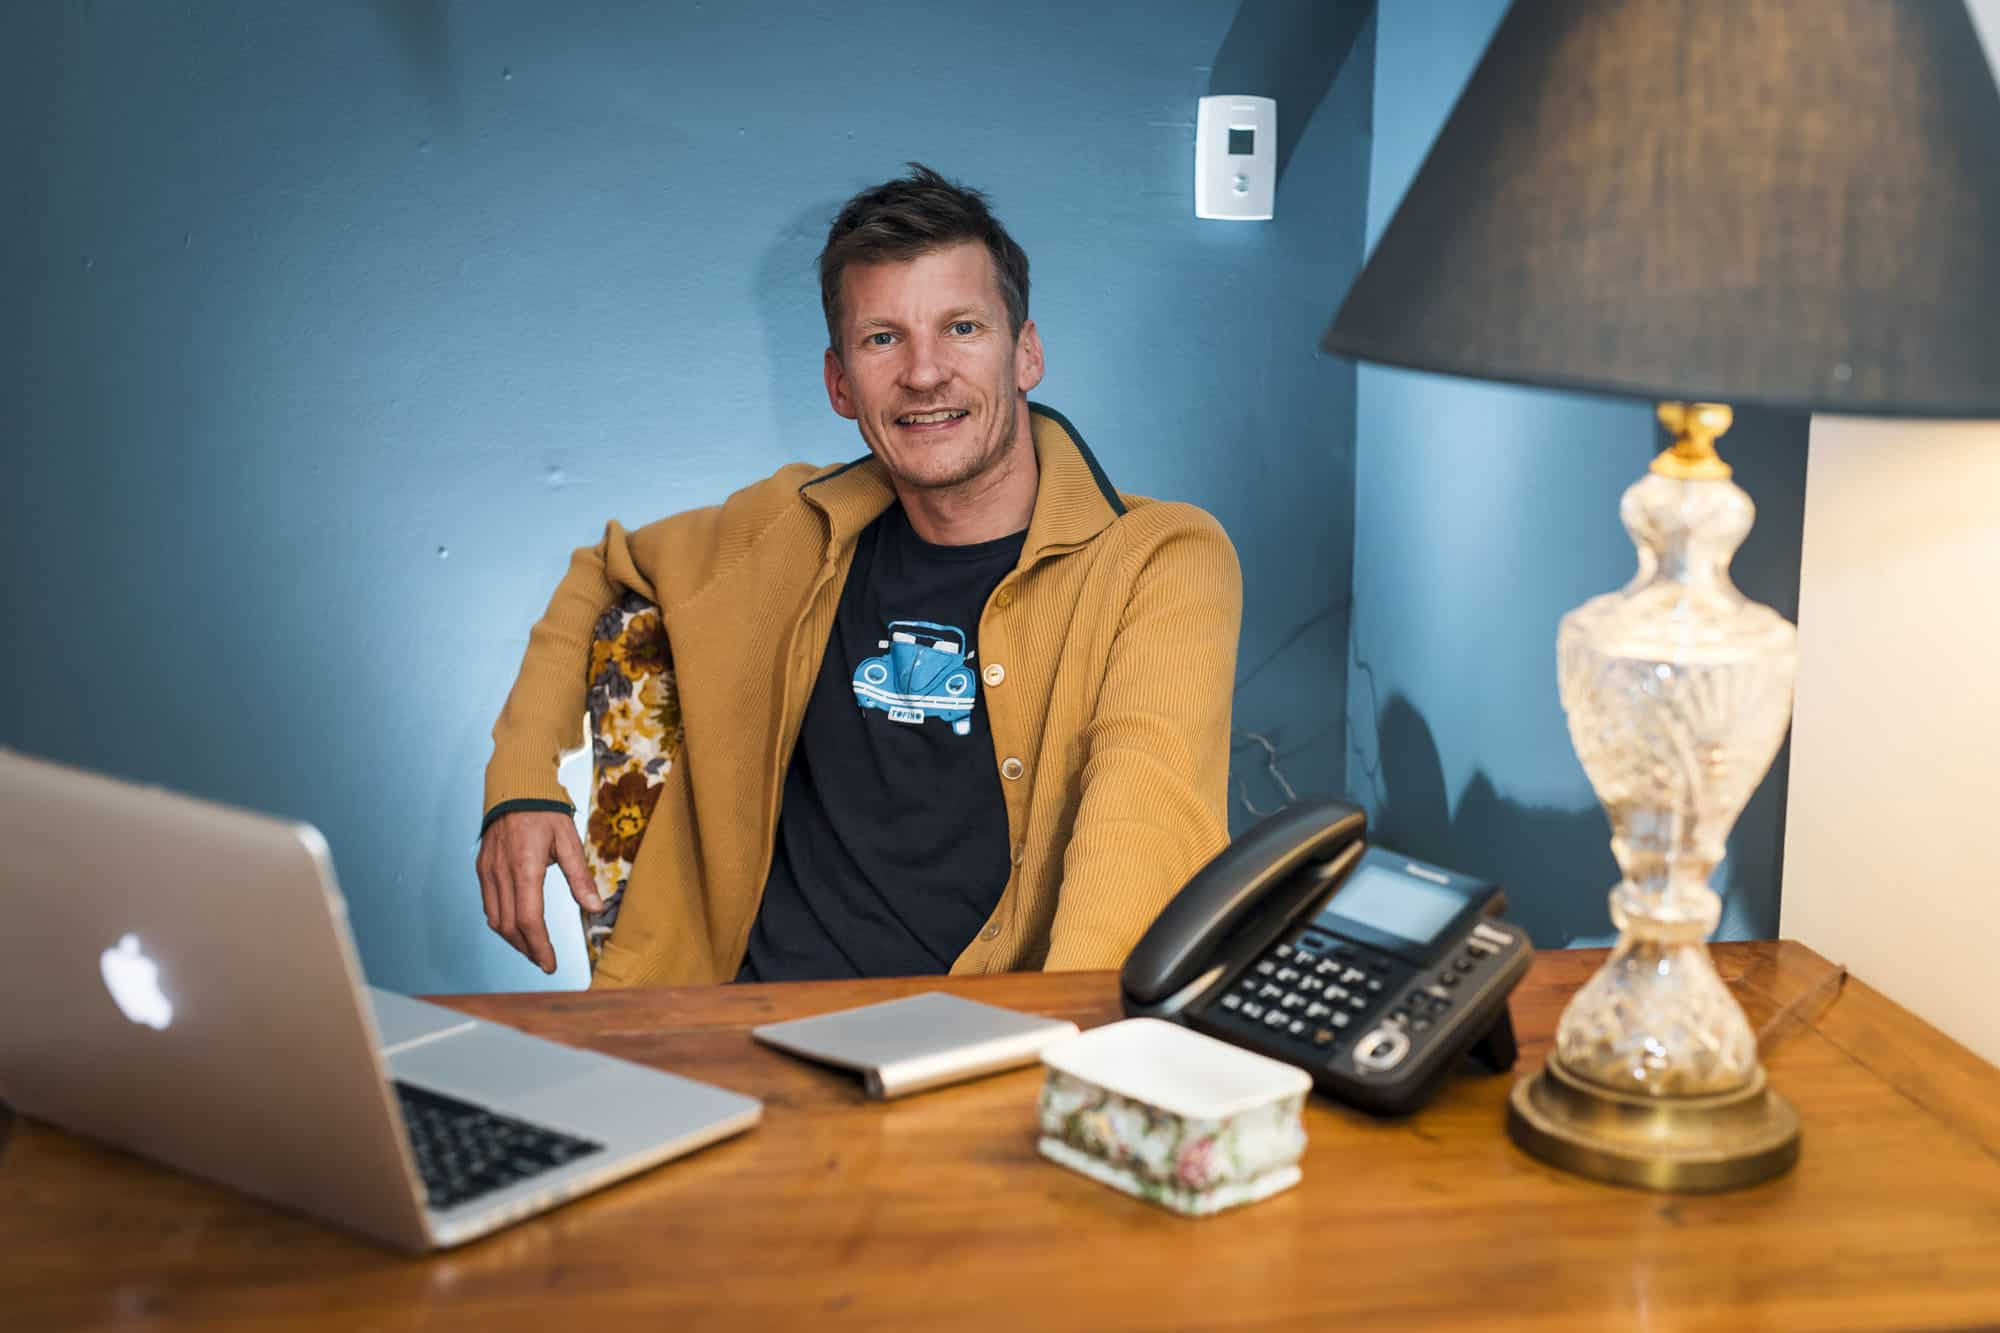 The-common-coworking-squamish-Peter-Buchholz